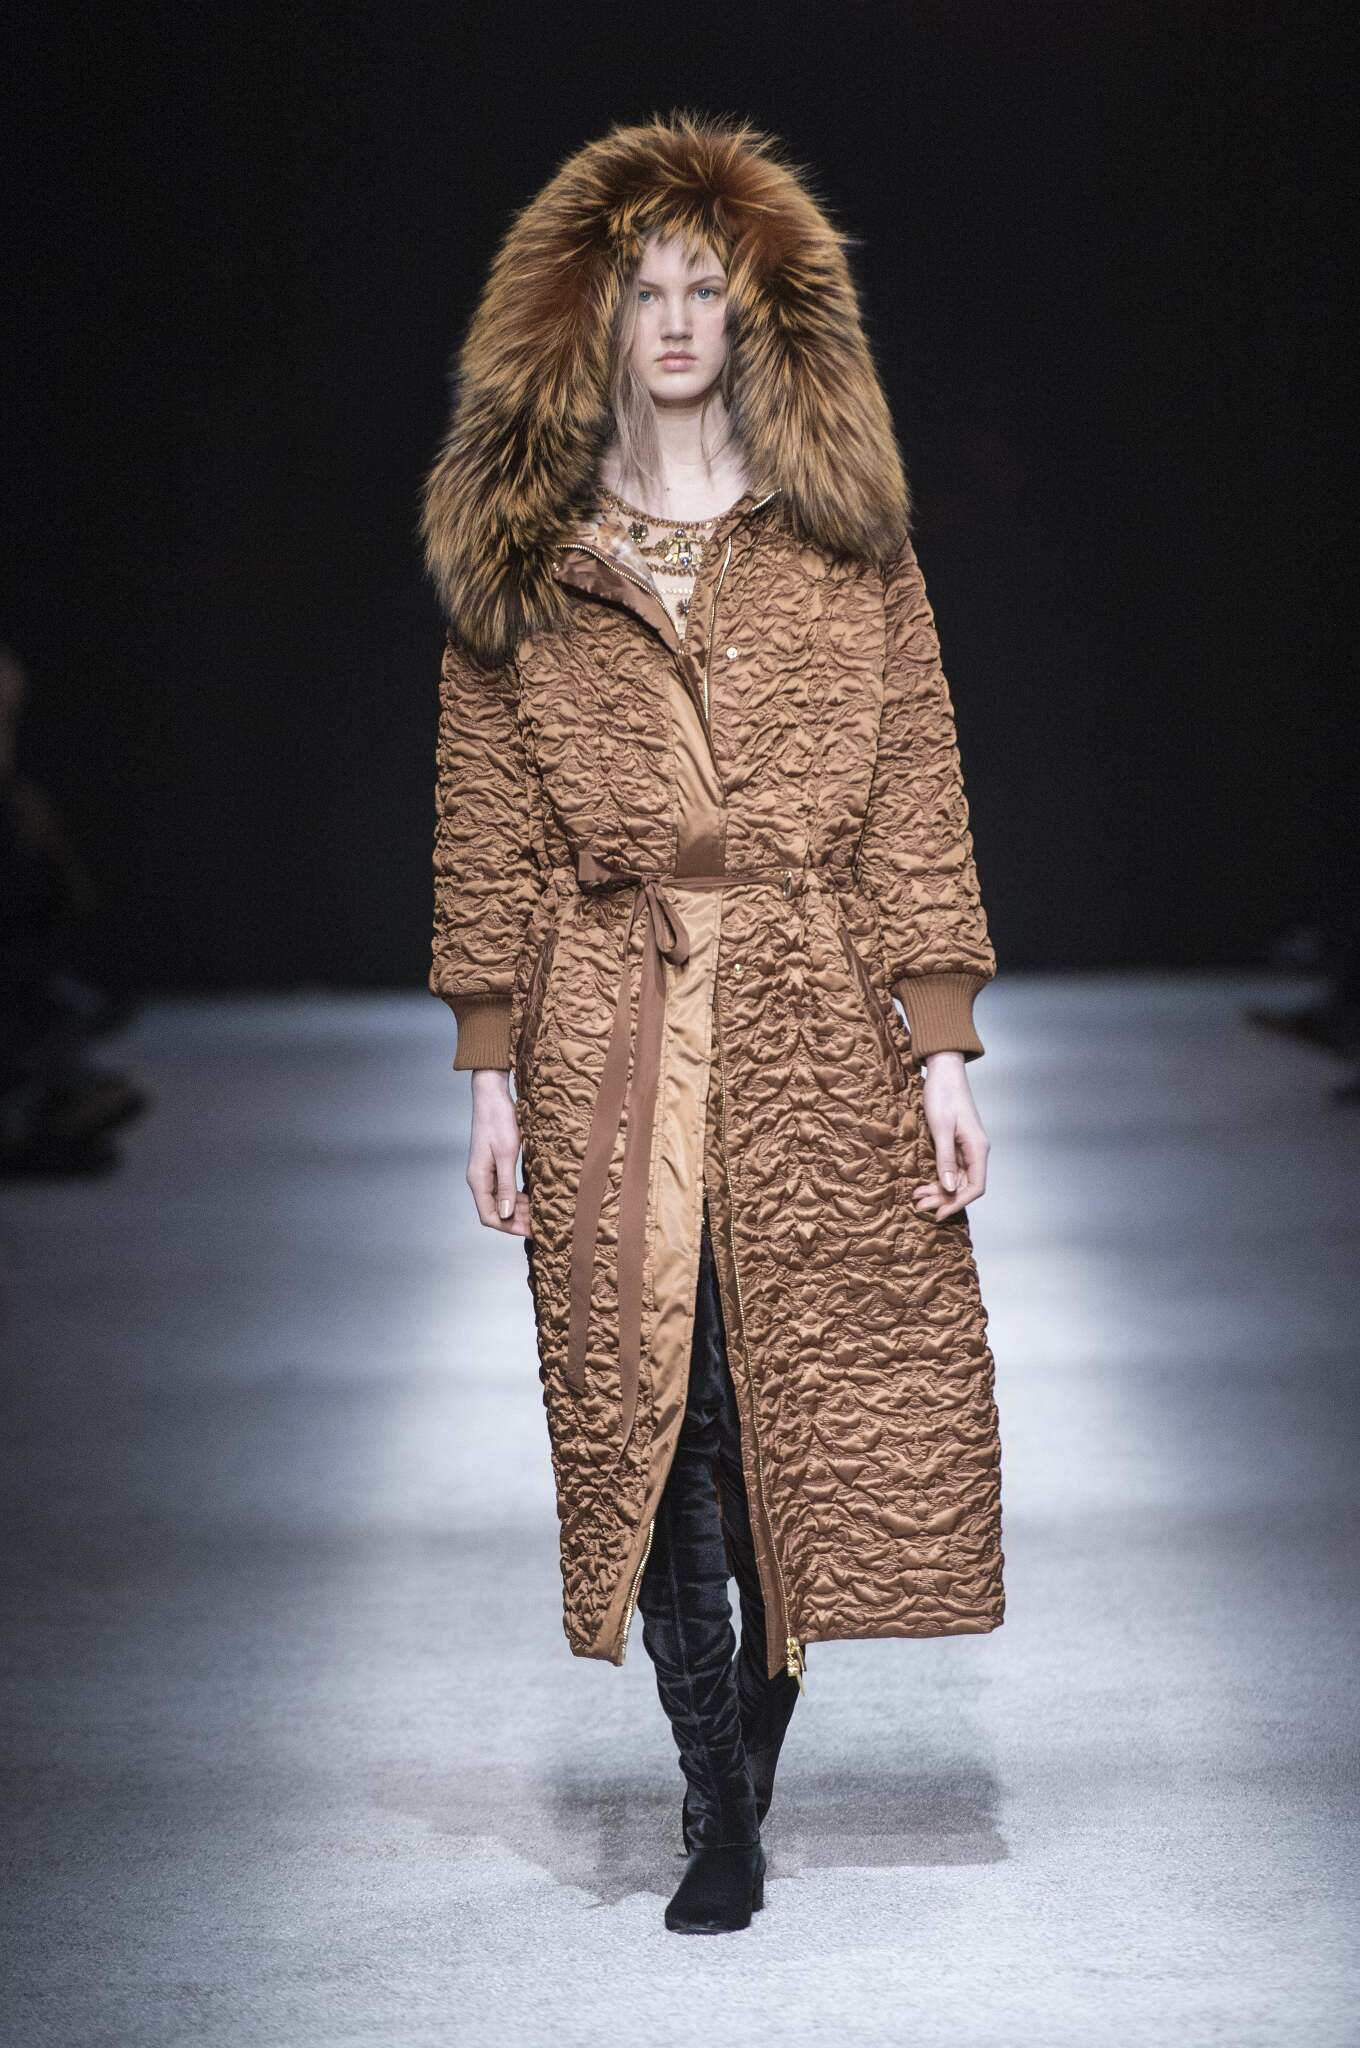 Catwalk Alberta Ferretti Fall Winter 2015 16 Women's Collection Milan Fashion Week